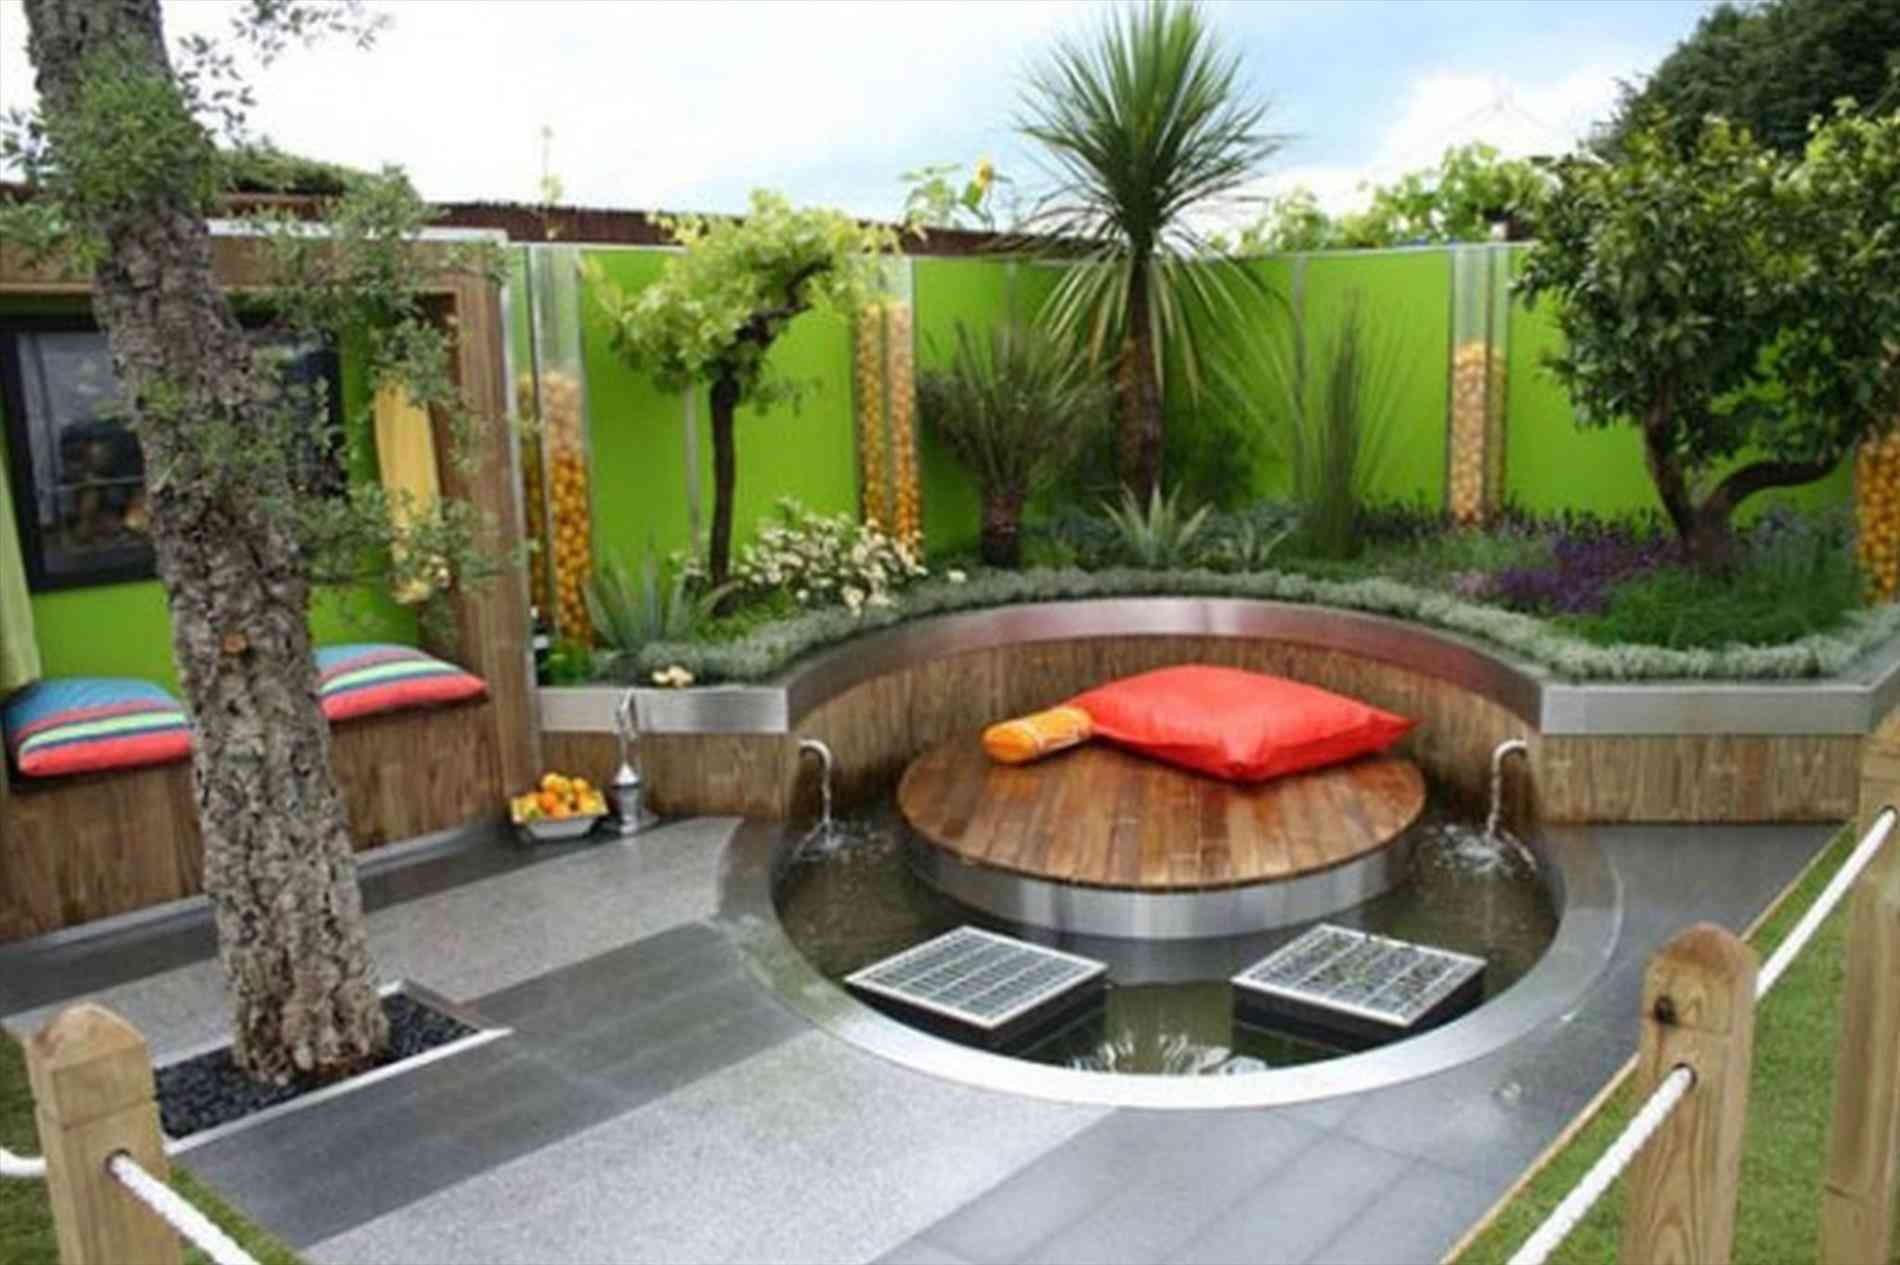 Home Improvement Backyard Landscaping Ideas Sard Info pertaining to 10 Awesome Concepts of How to Improve Backyard Improvement Ideas